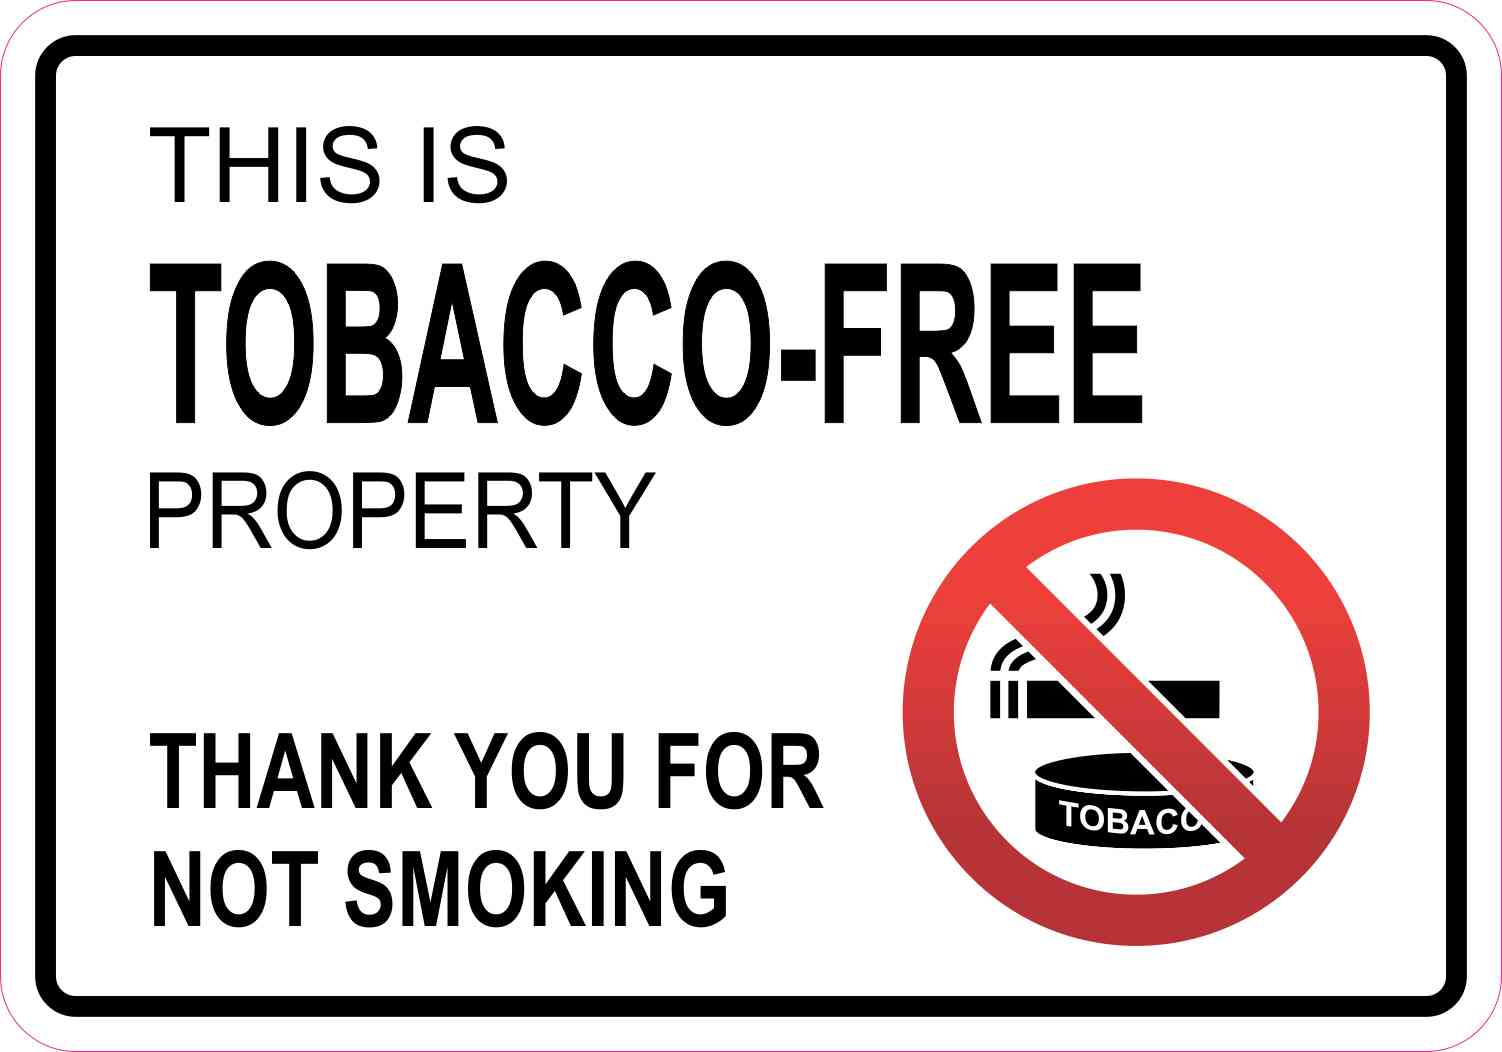 10in x 7in tobacco free property sticker vinyl smoking sign decal stickers